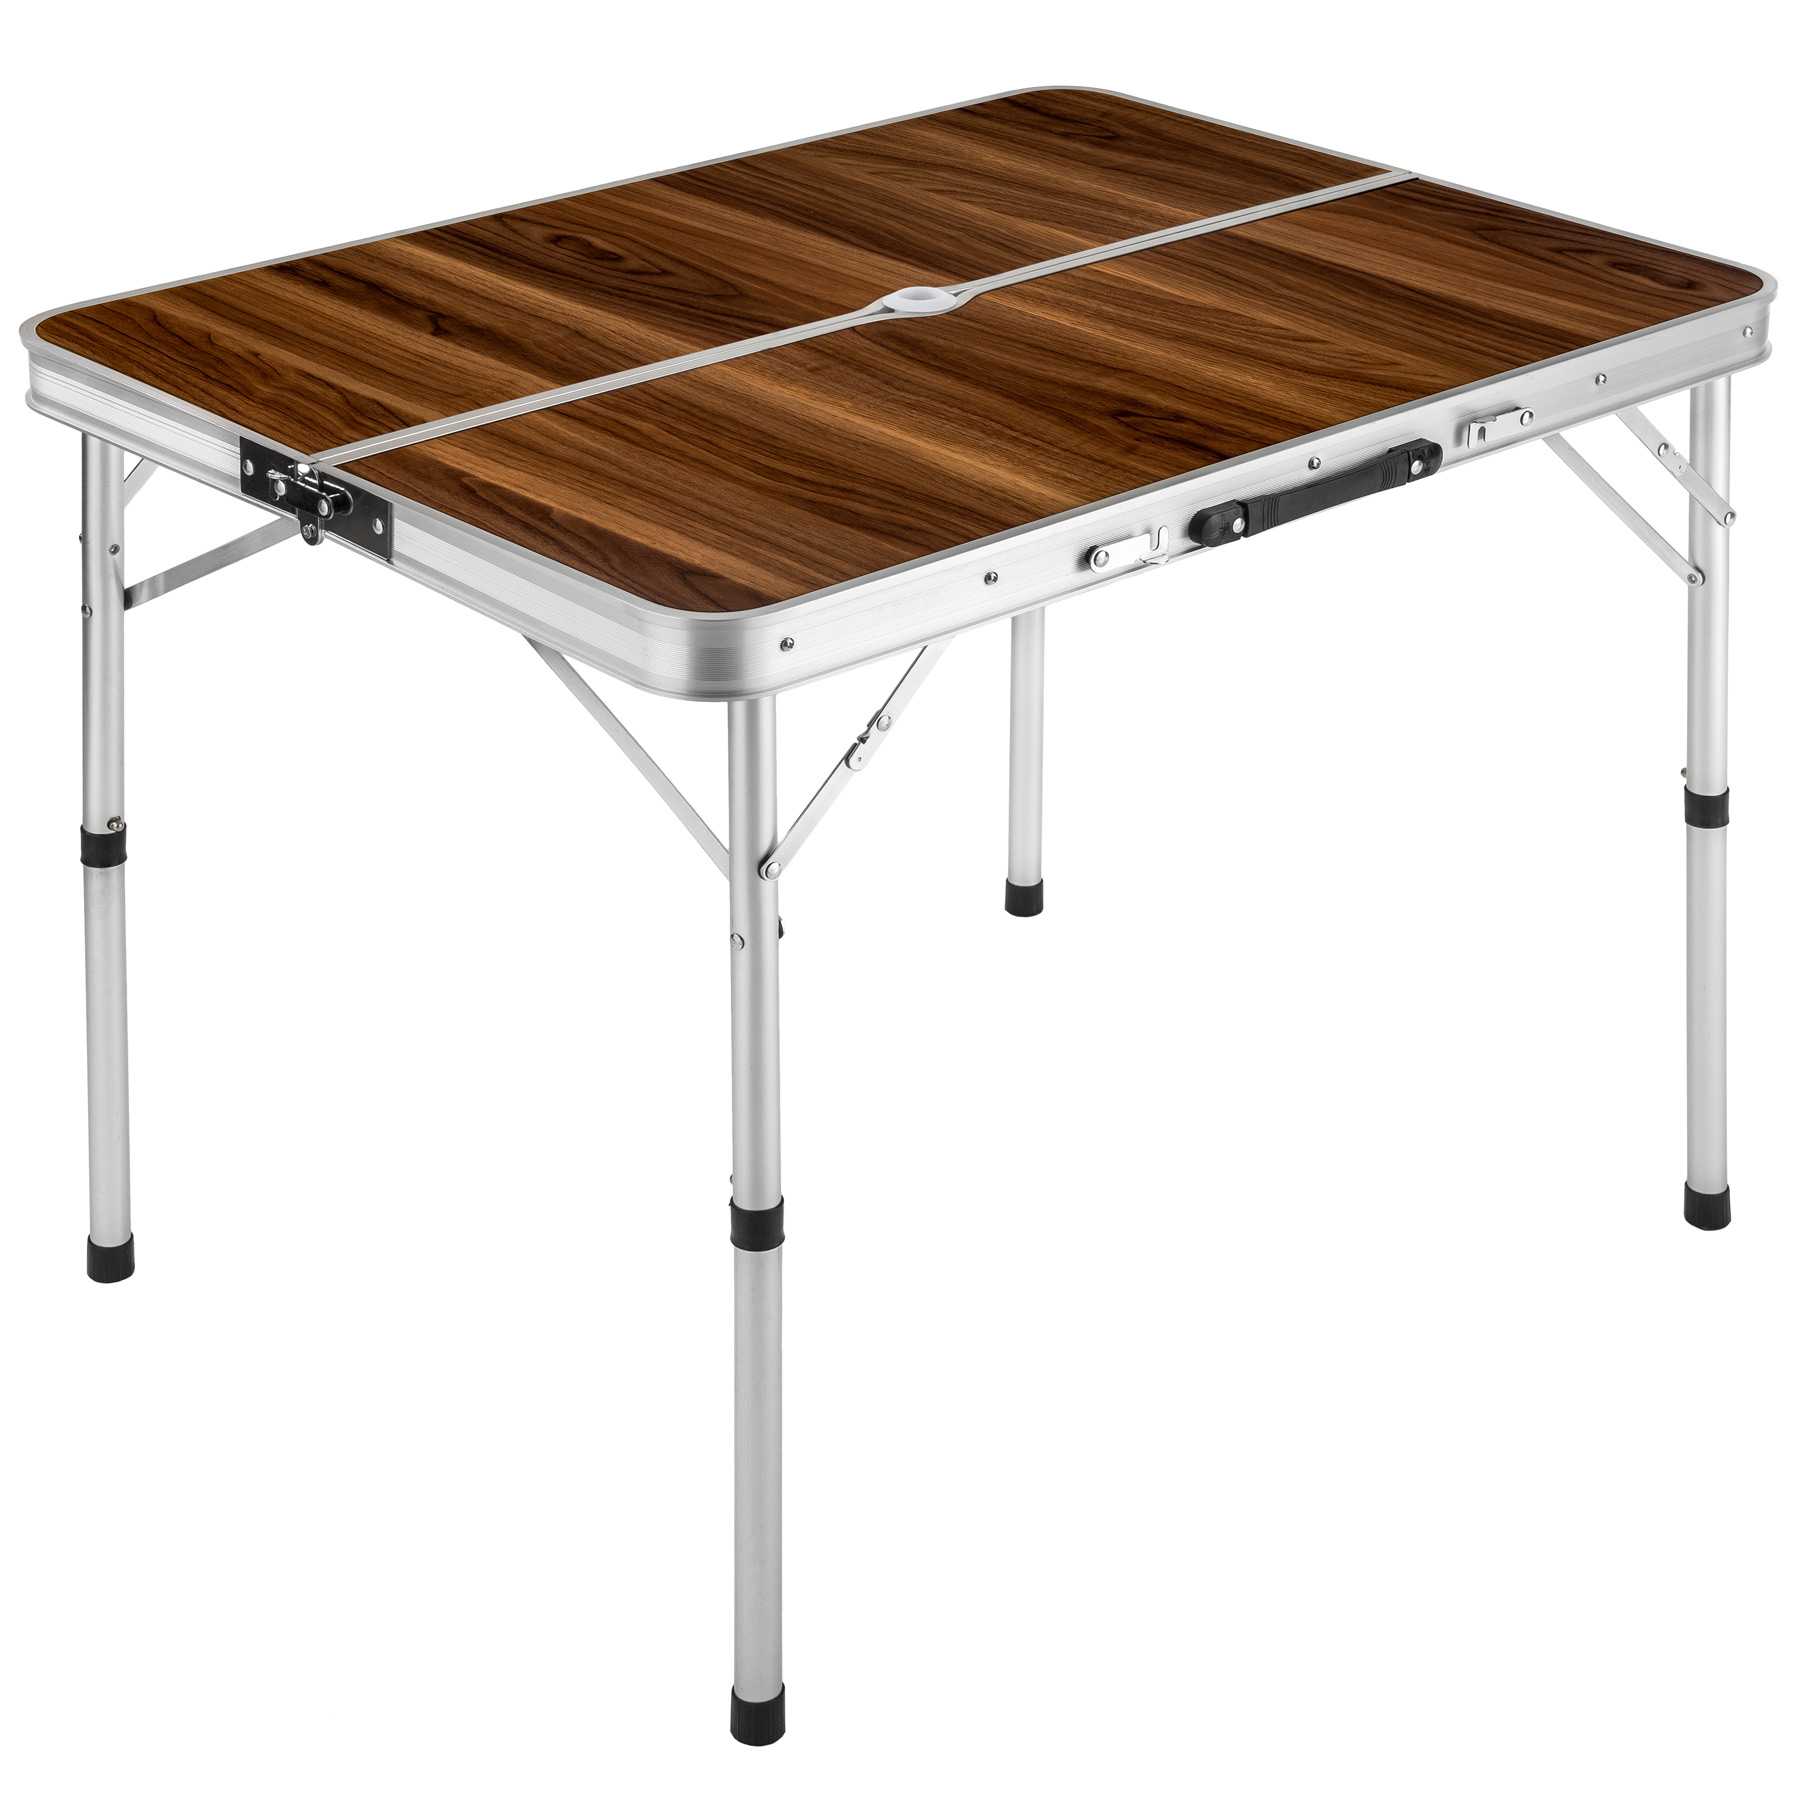 Eensemble table pliante valise avec 2 bancs camping for Table pliante avec rallonge